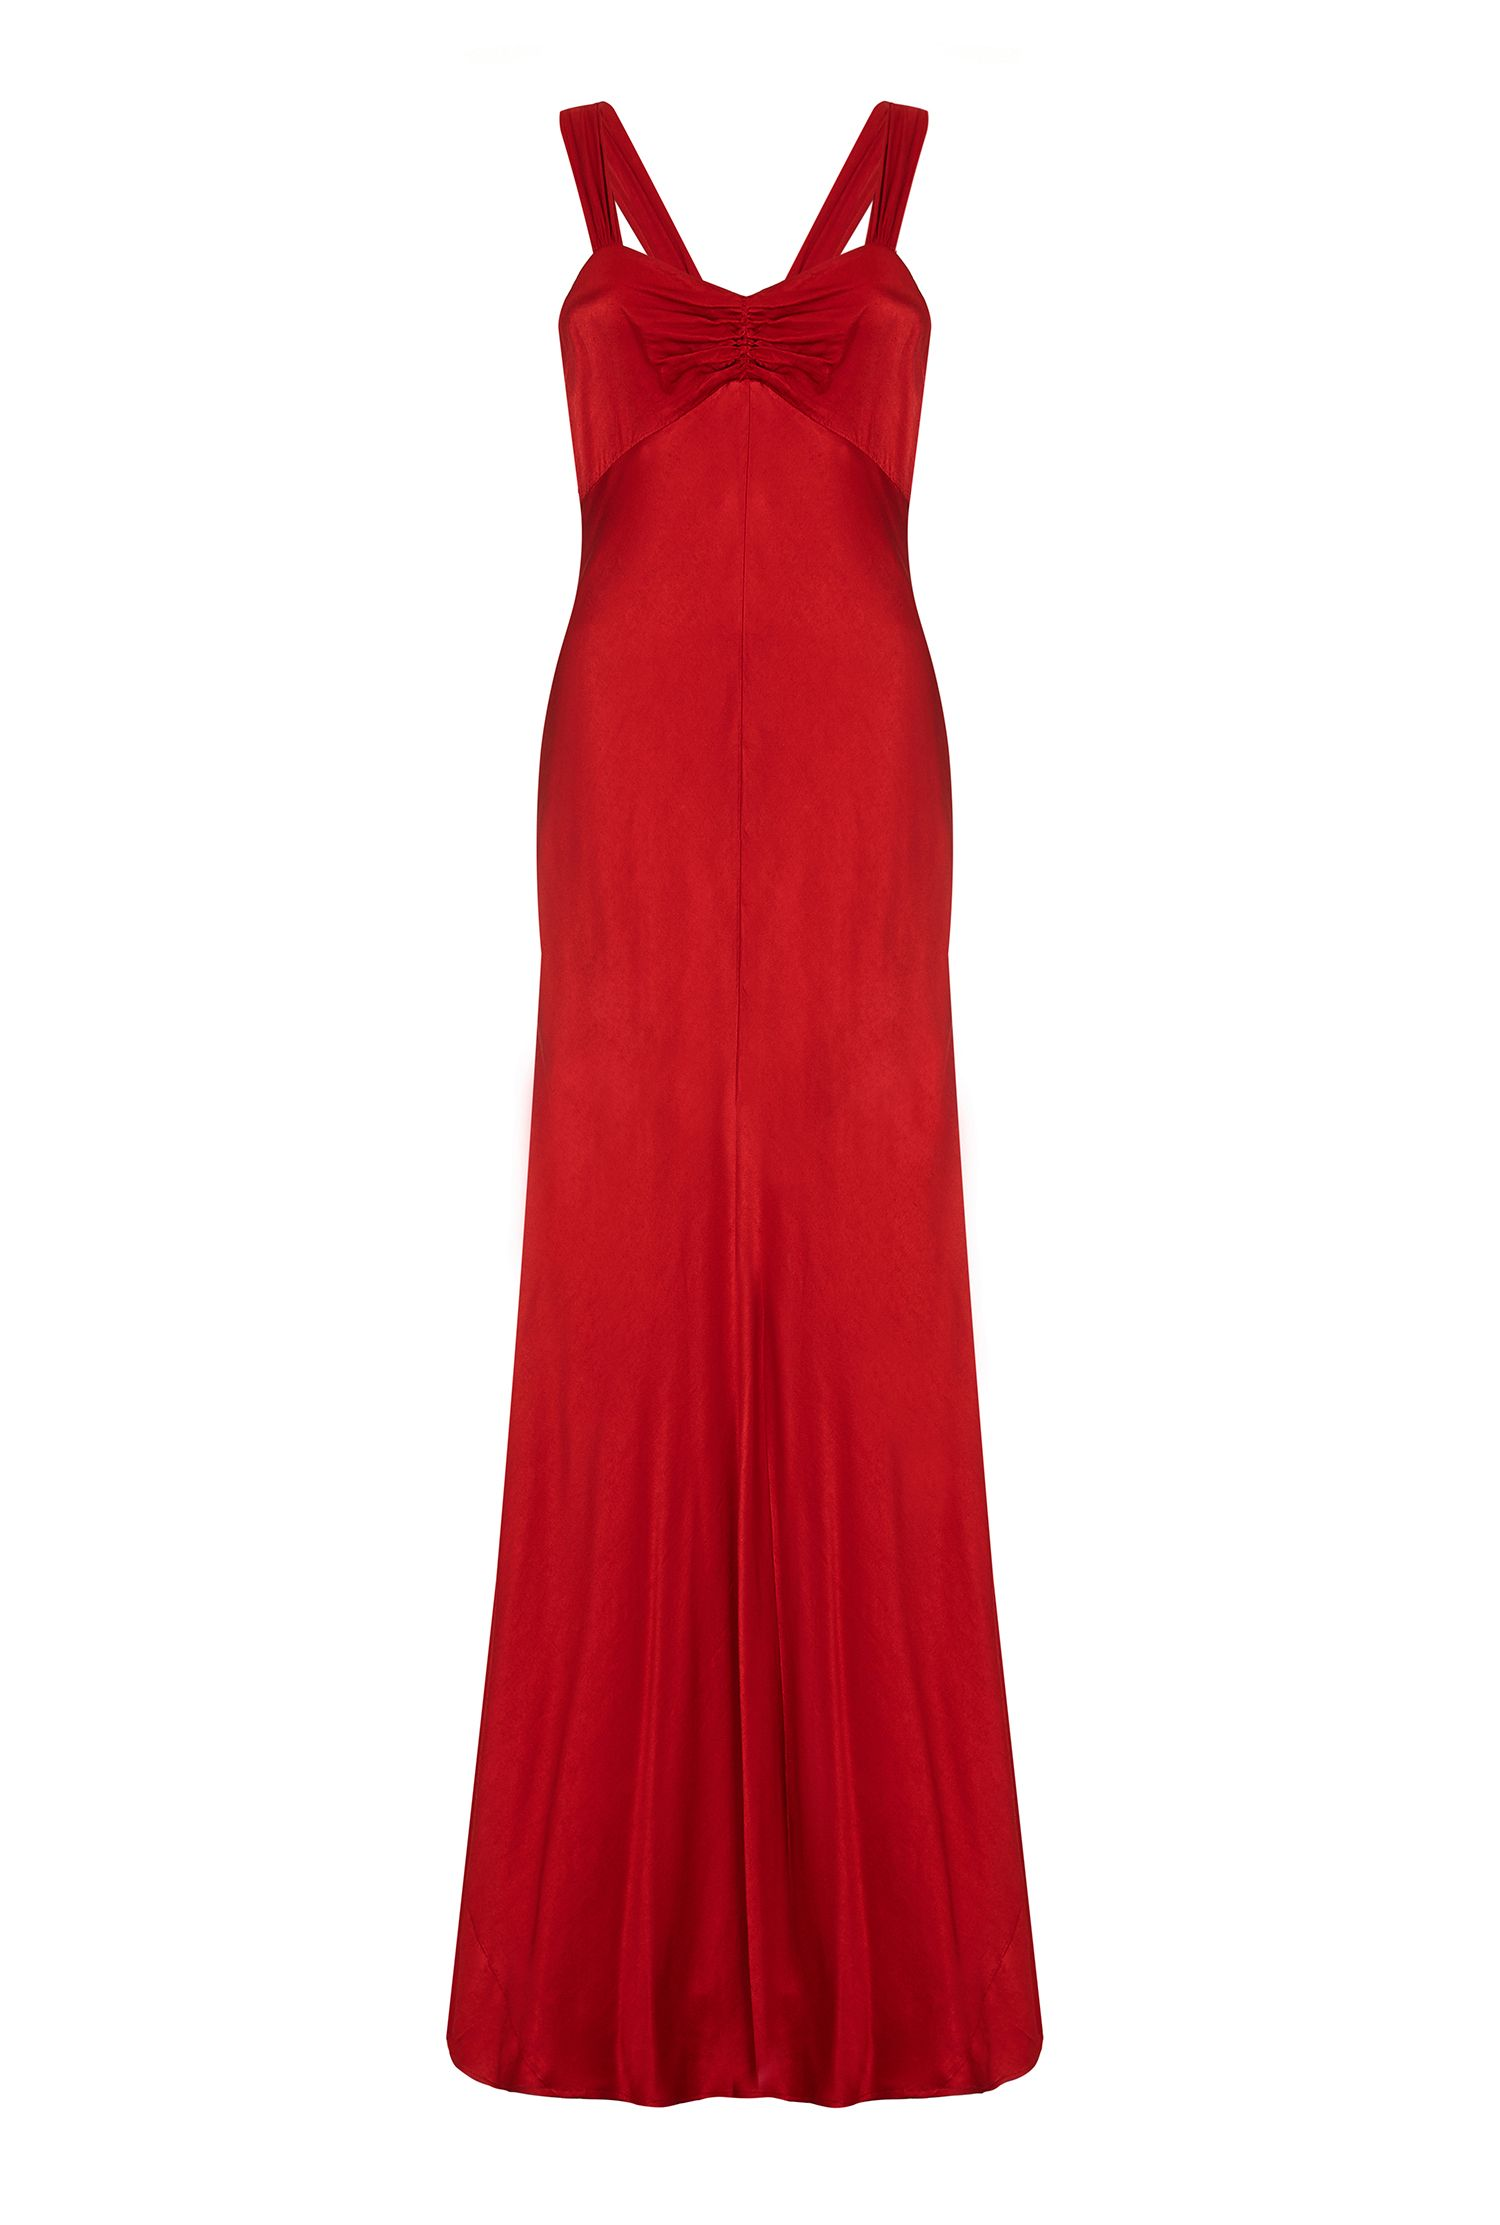 Ghost Bea Dress, Red